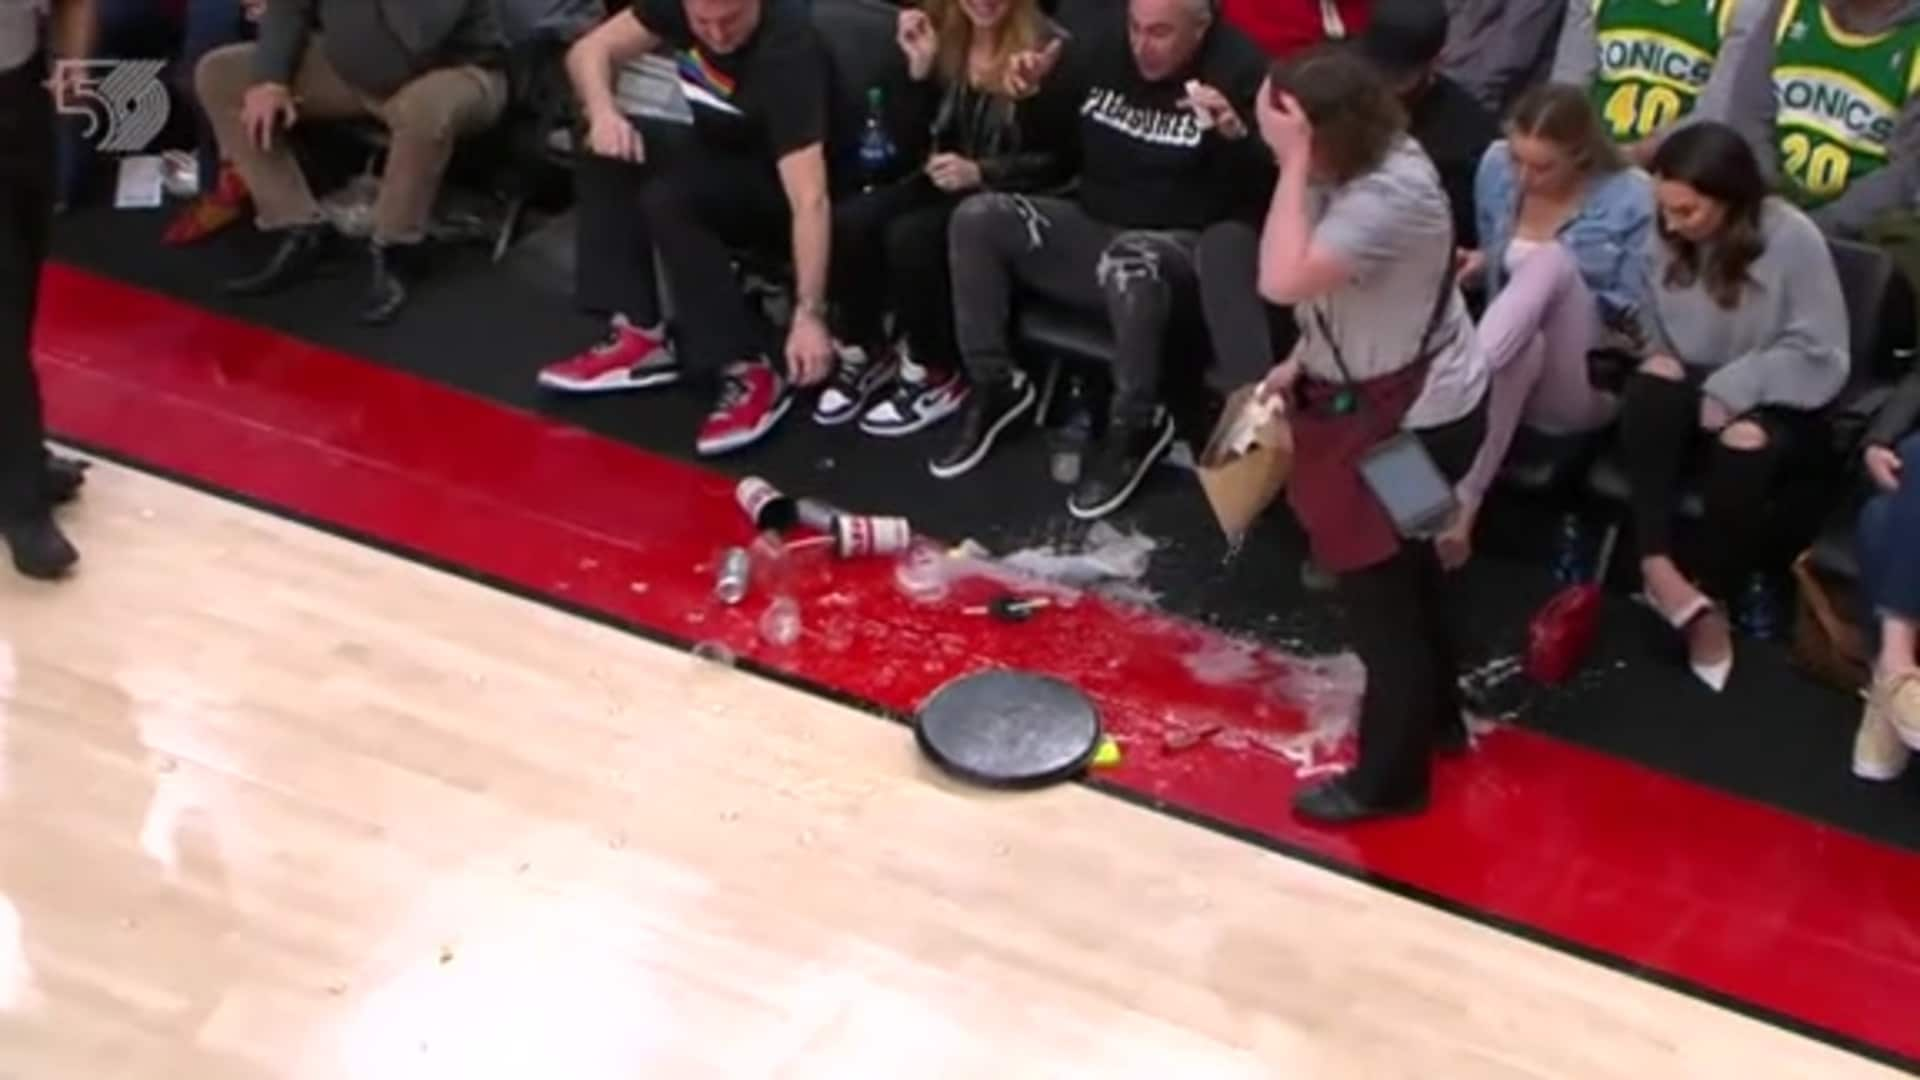 Full tray of drinks gets spilled courtside